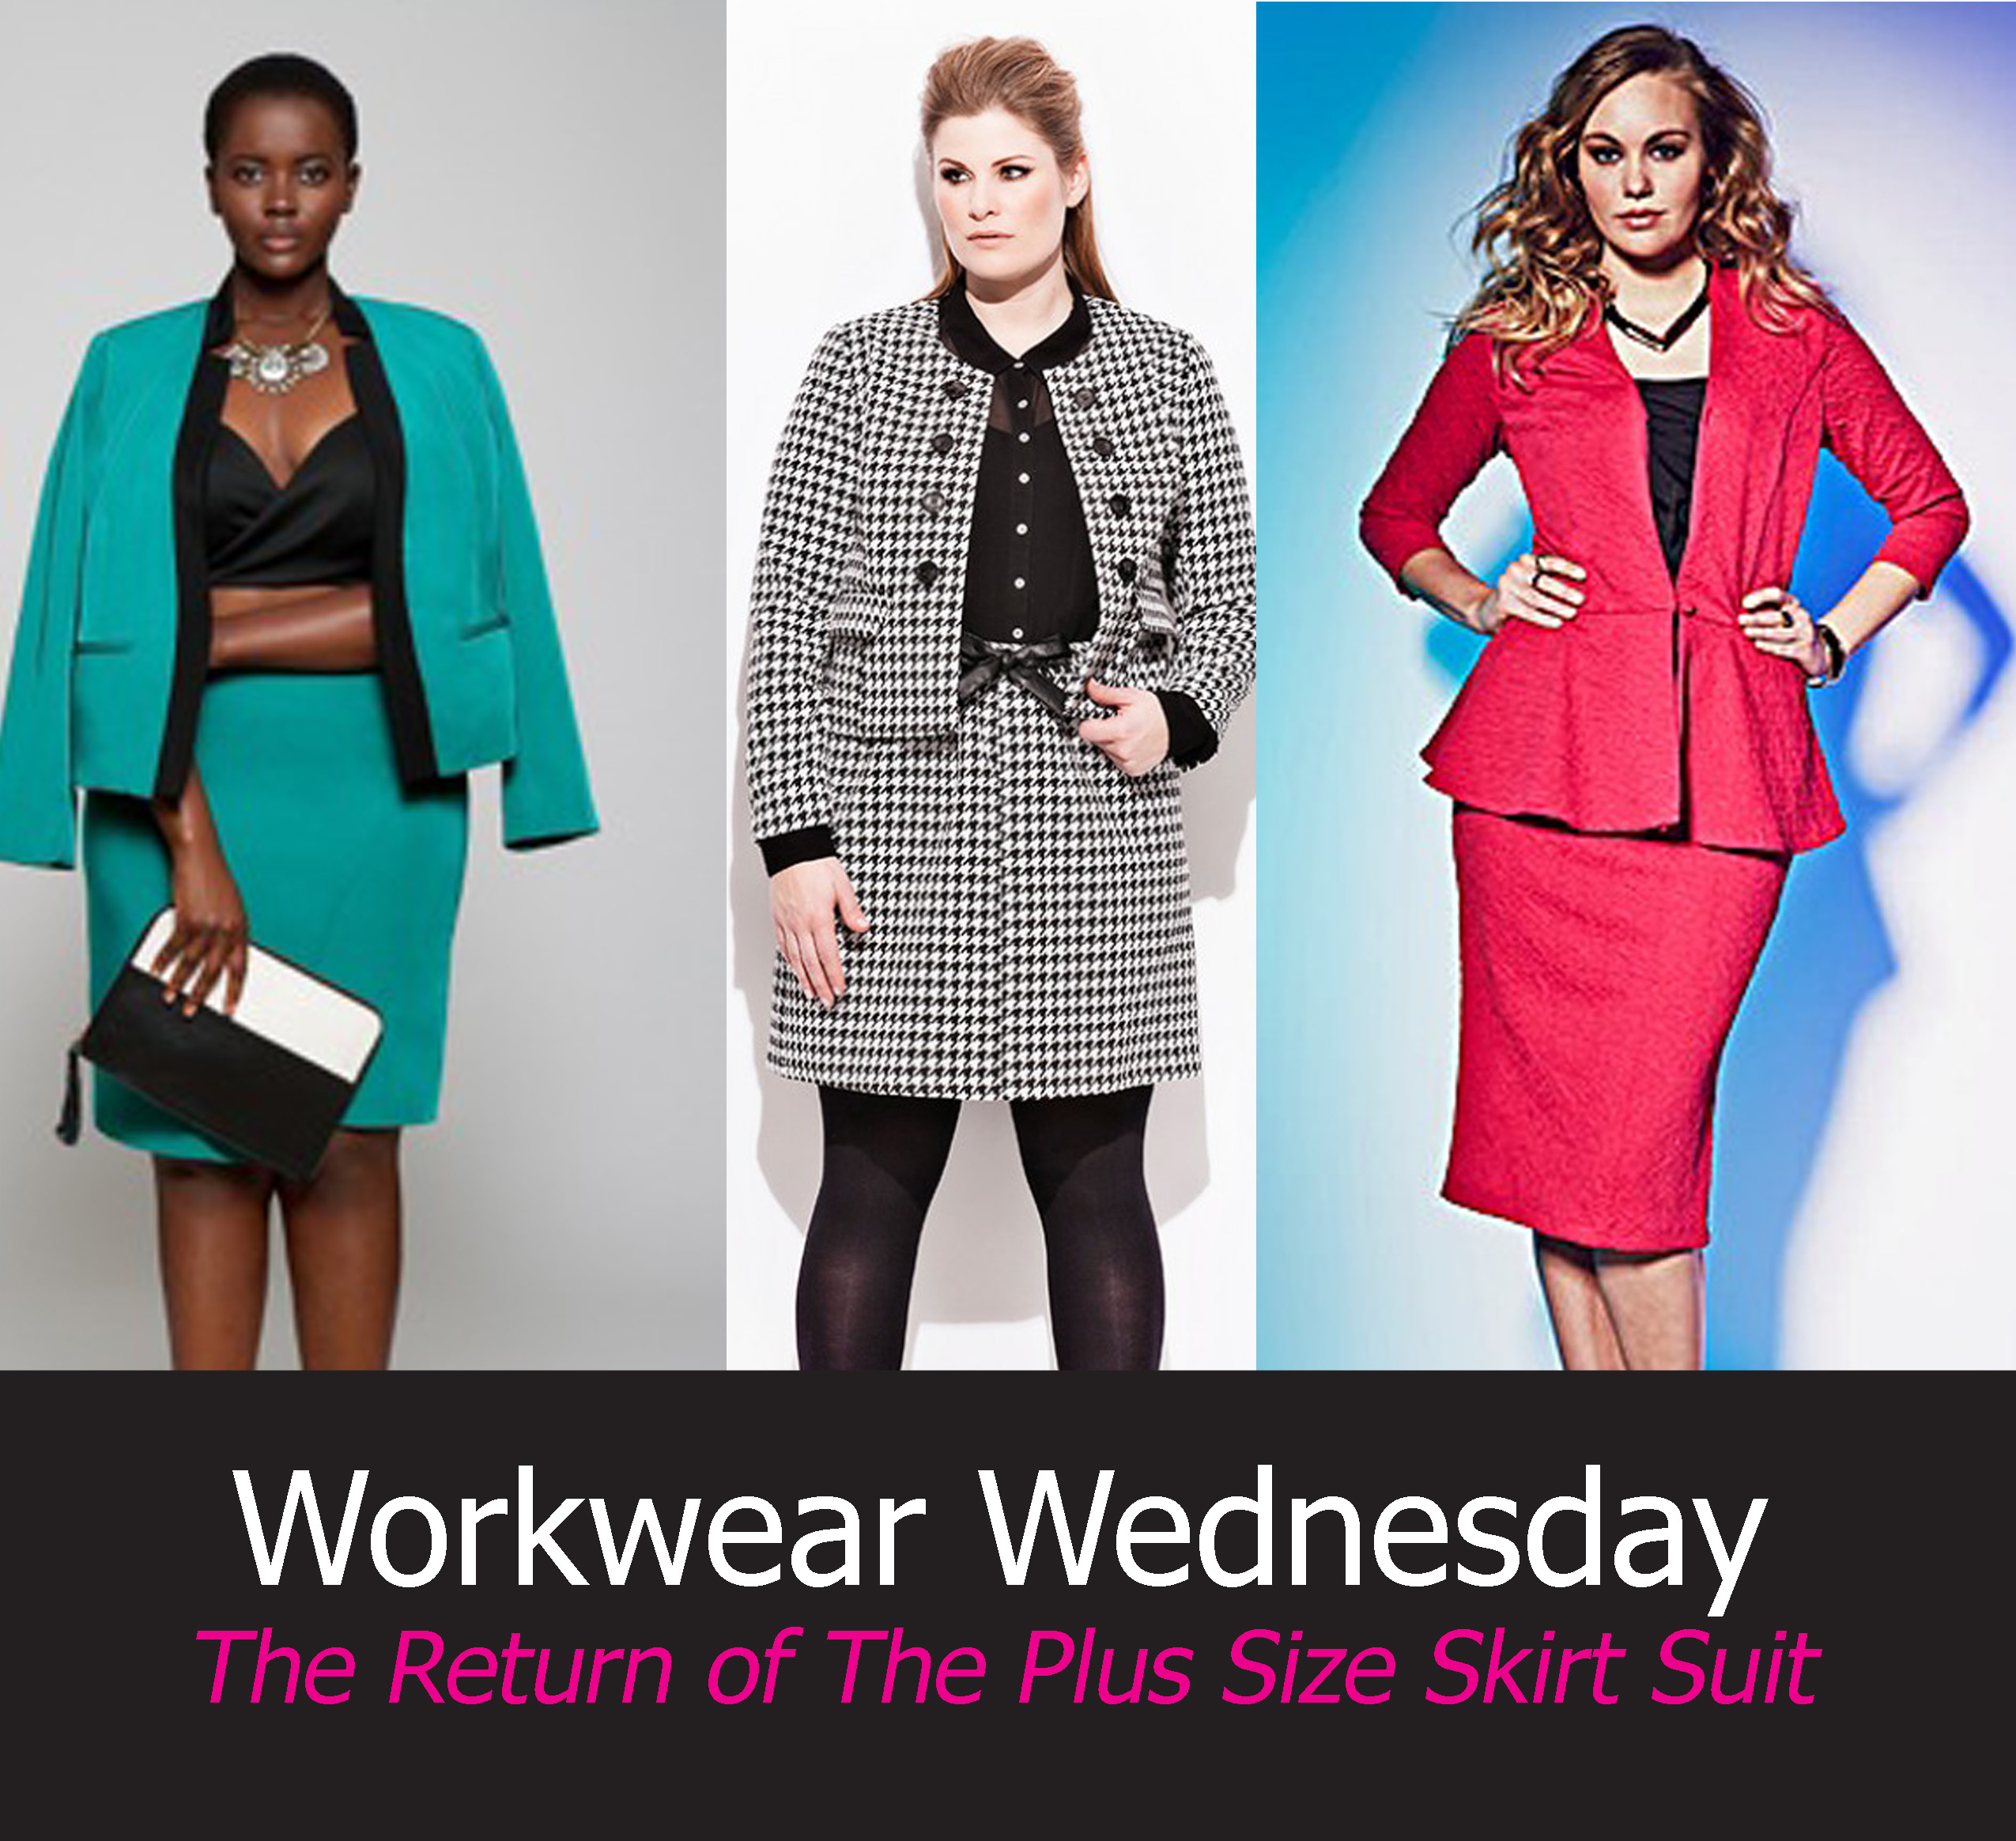 042588bad72 WORK WEAR WEDNESDAY  THE RETURN OF THE SKIRT SUIT (PLUS SIZE ...